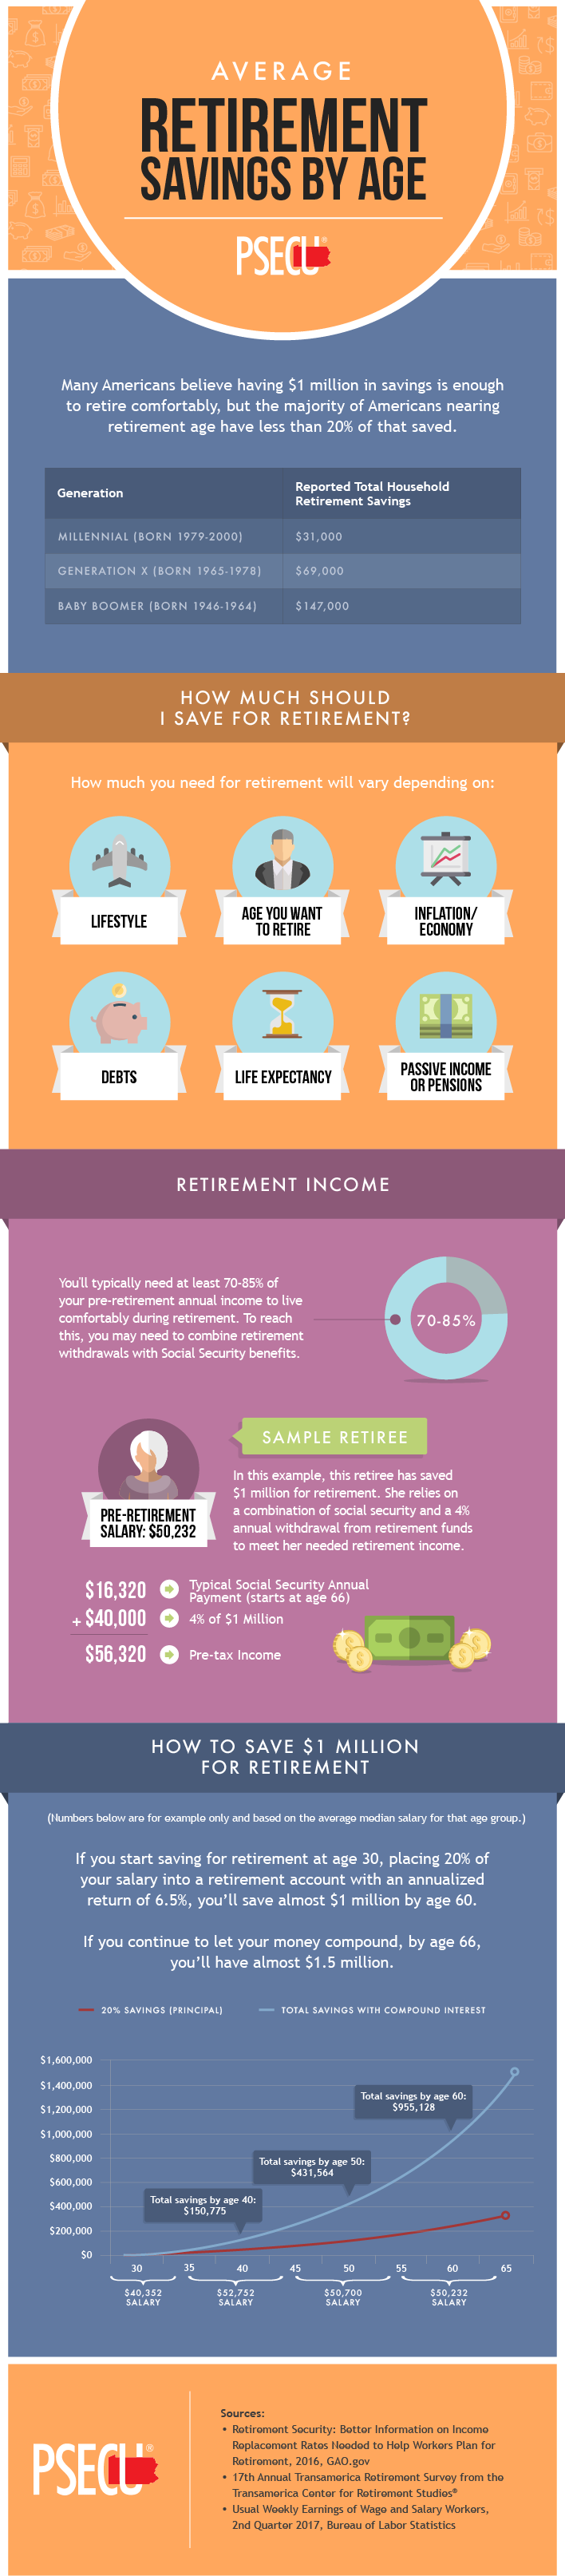 Average Retirement Savings by Age Infographic